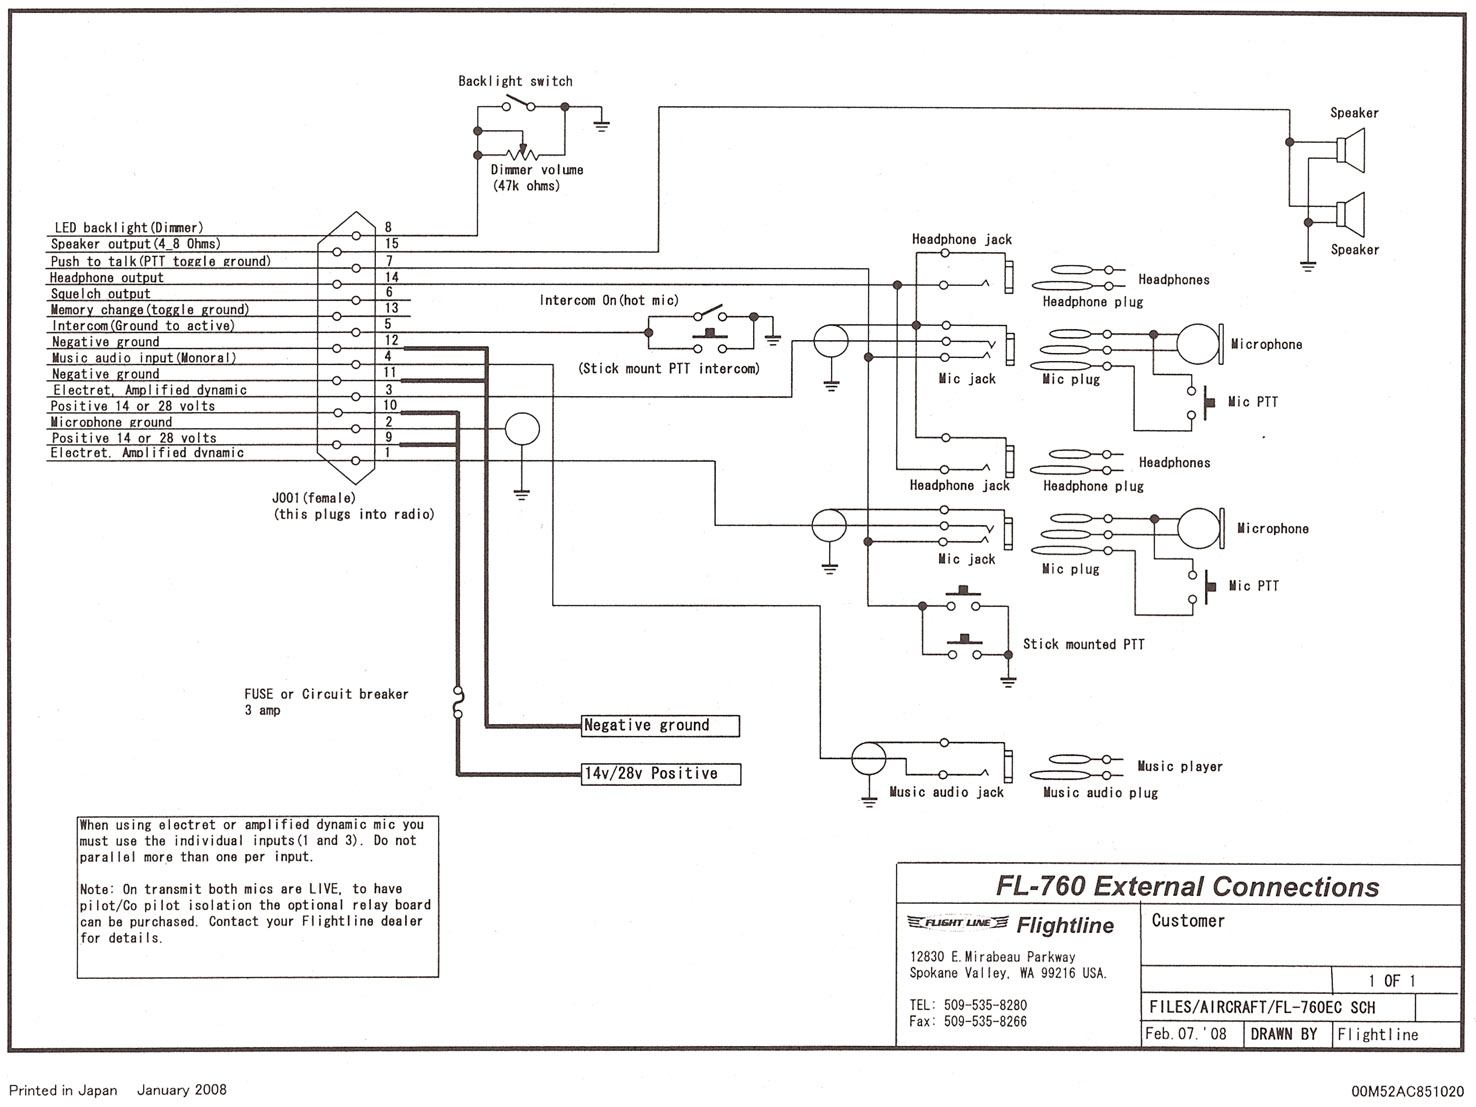 Jasco 65tdm r alternator wiring diagram free download wiring diagram 28 jasco alternator wiring diagram 123wiringdiagrams download jasco alternator wiring diagram aircraft wiring diagrams prestolite alternator wiring asfbconference2016 Image collections